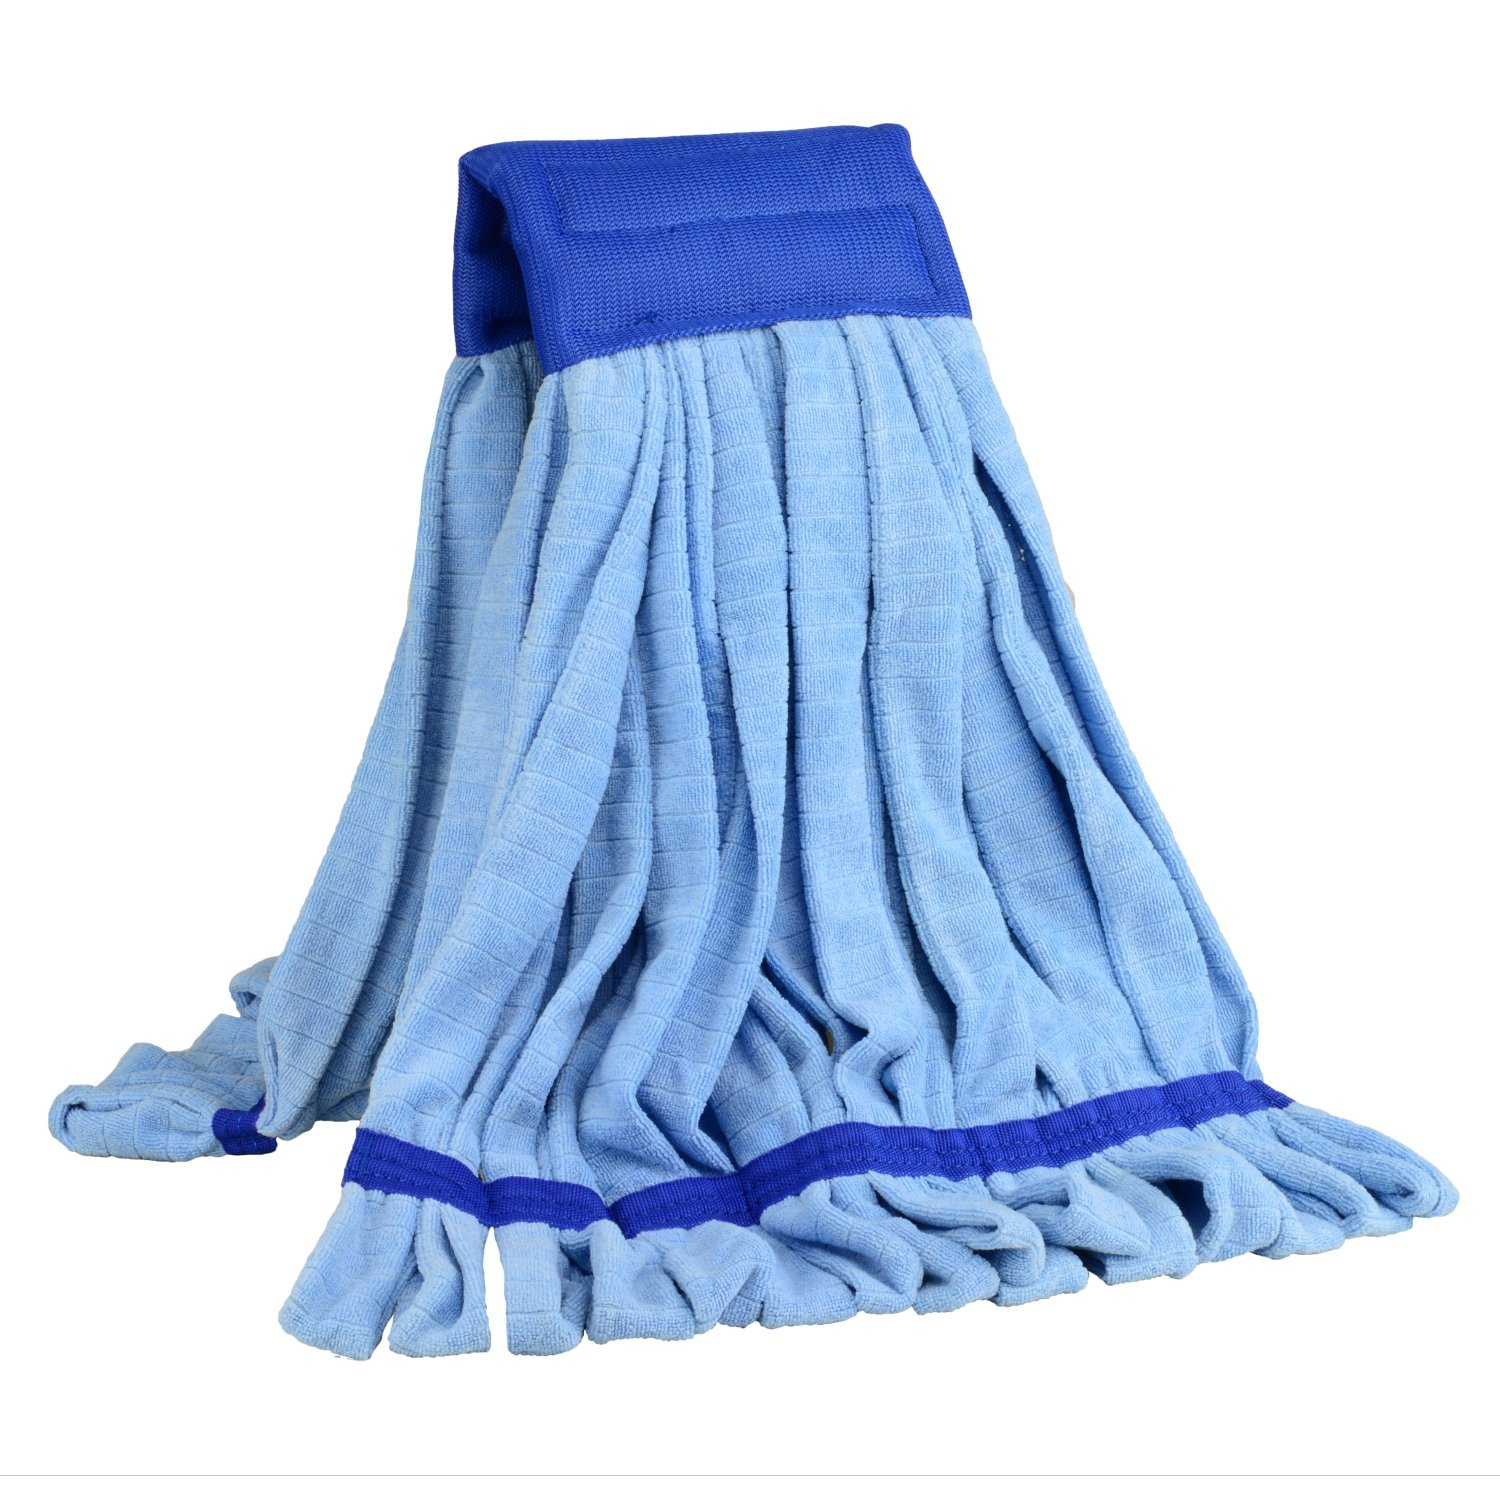 Large Microfiber Wet Mop Head Replacement | Cleans 3x Faster Than Conventional Cotton String Mops | For Commercial And Industrial Use | (Blue) by Microfiber Wholesale